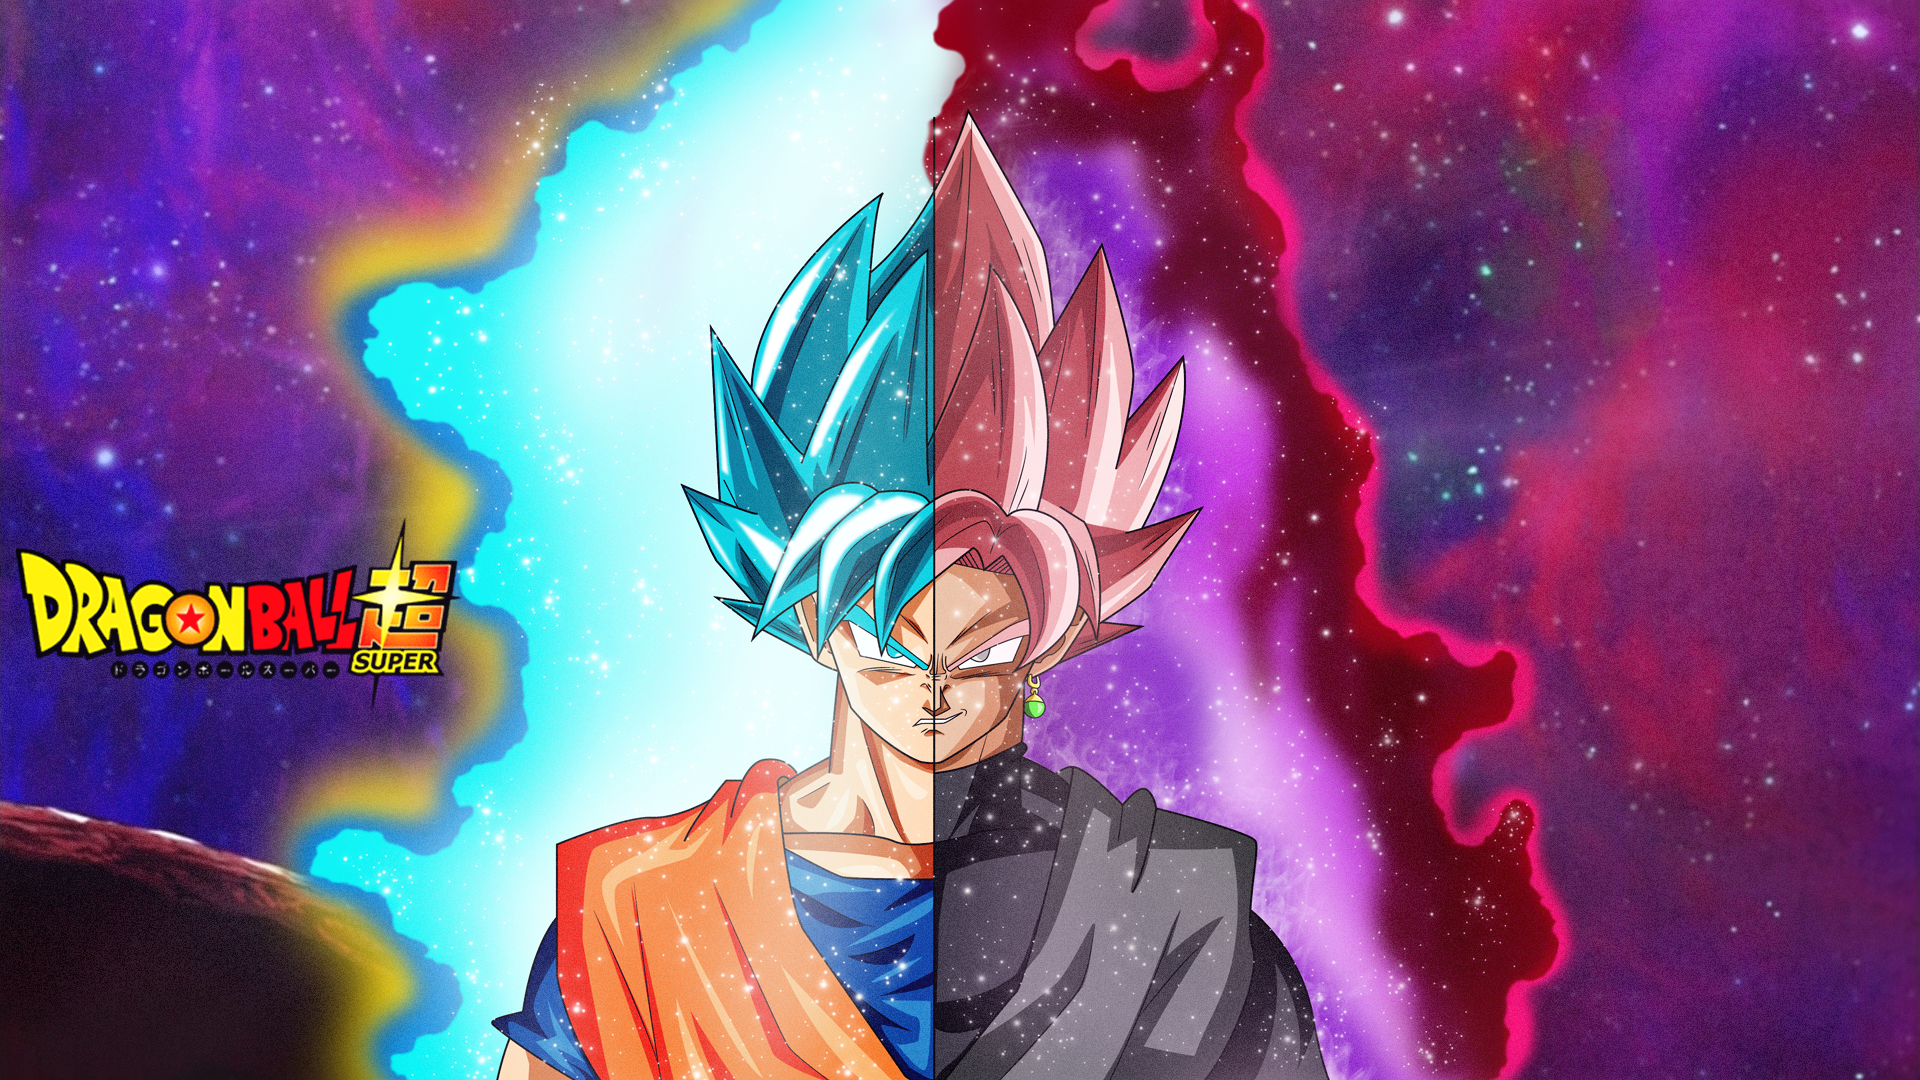 Dragon ball super full hd fond d 39 cran and arri re plan for Super fond ecran